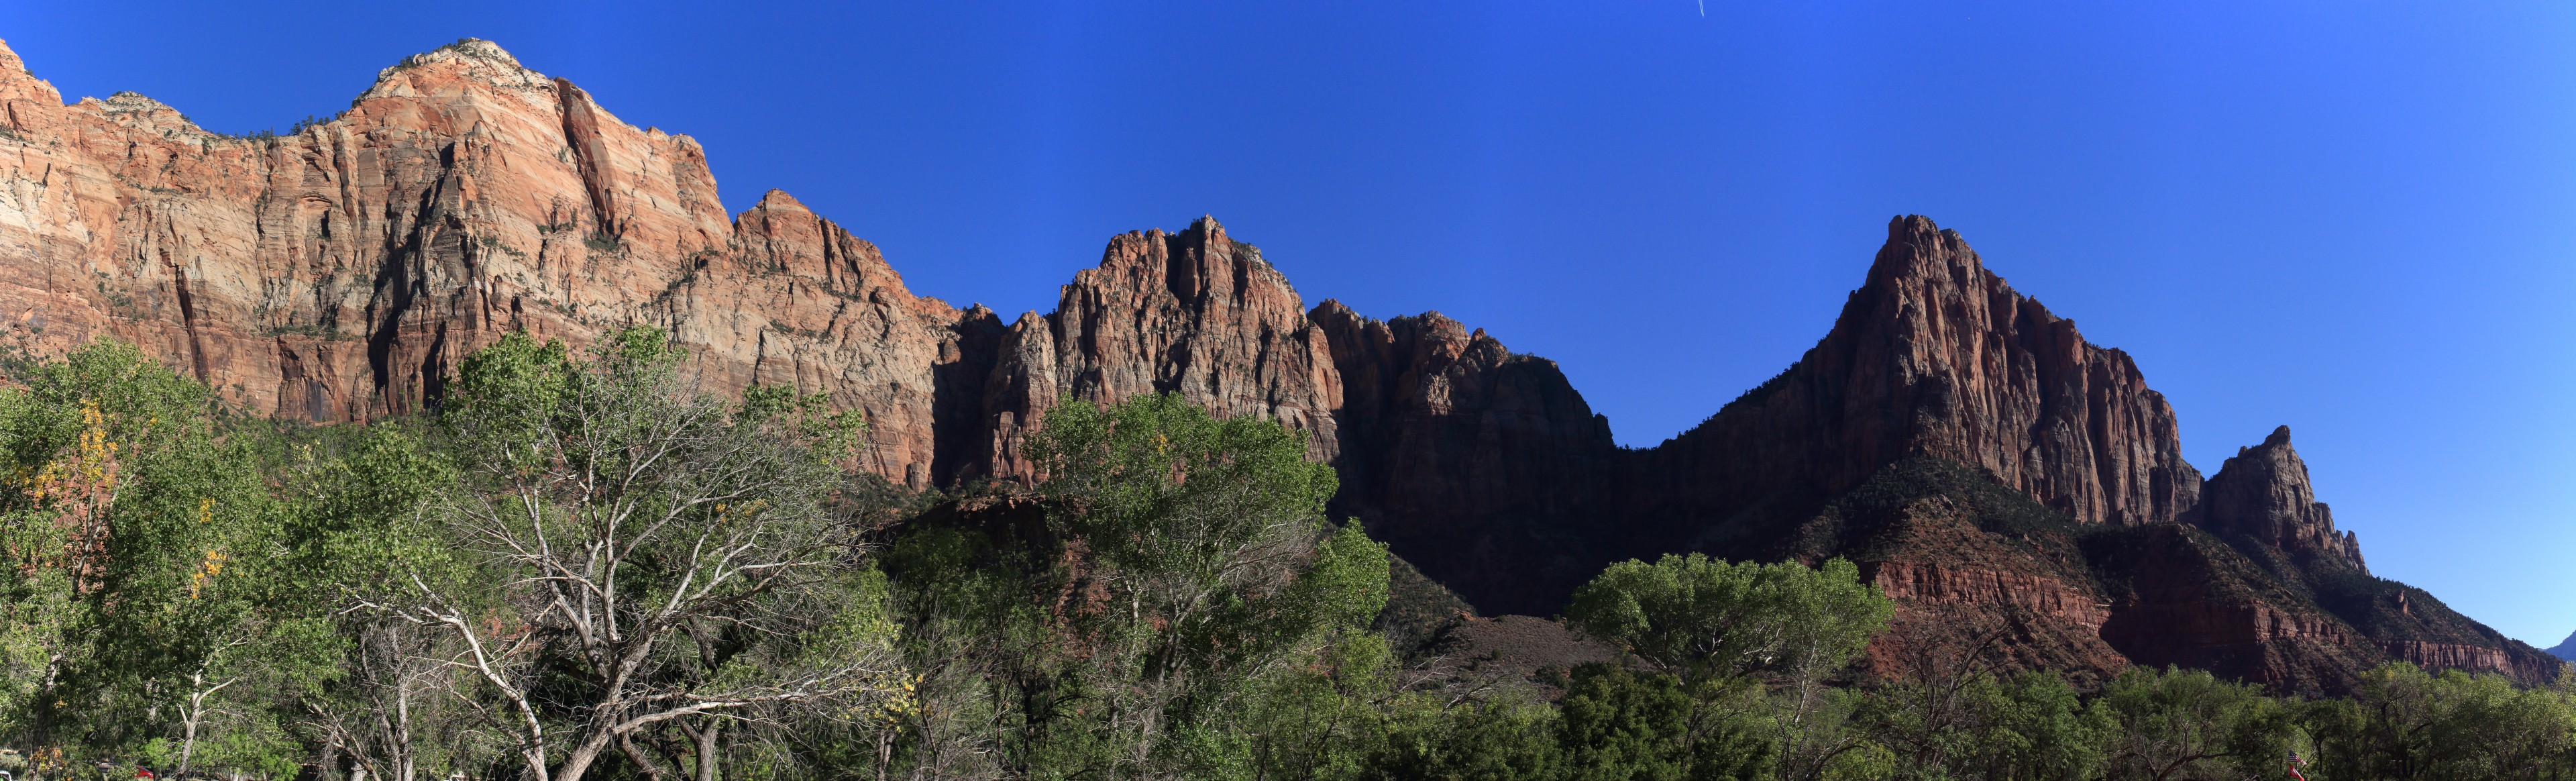 The Watchman. The view from the Watchman campground. The Watchman on the right, with Bridge Mountain on the left.